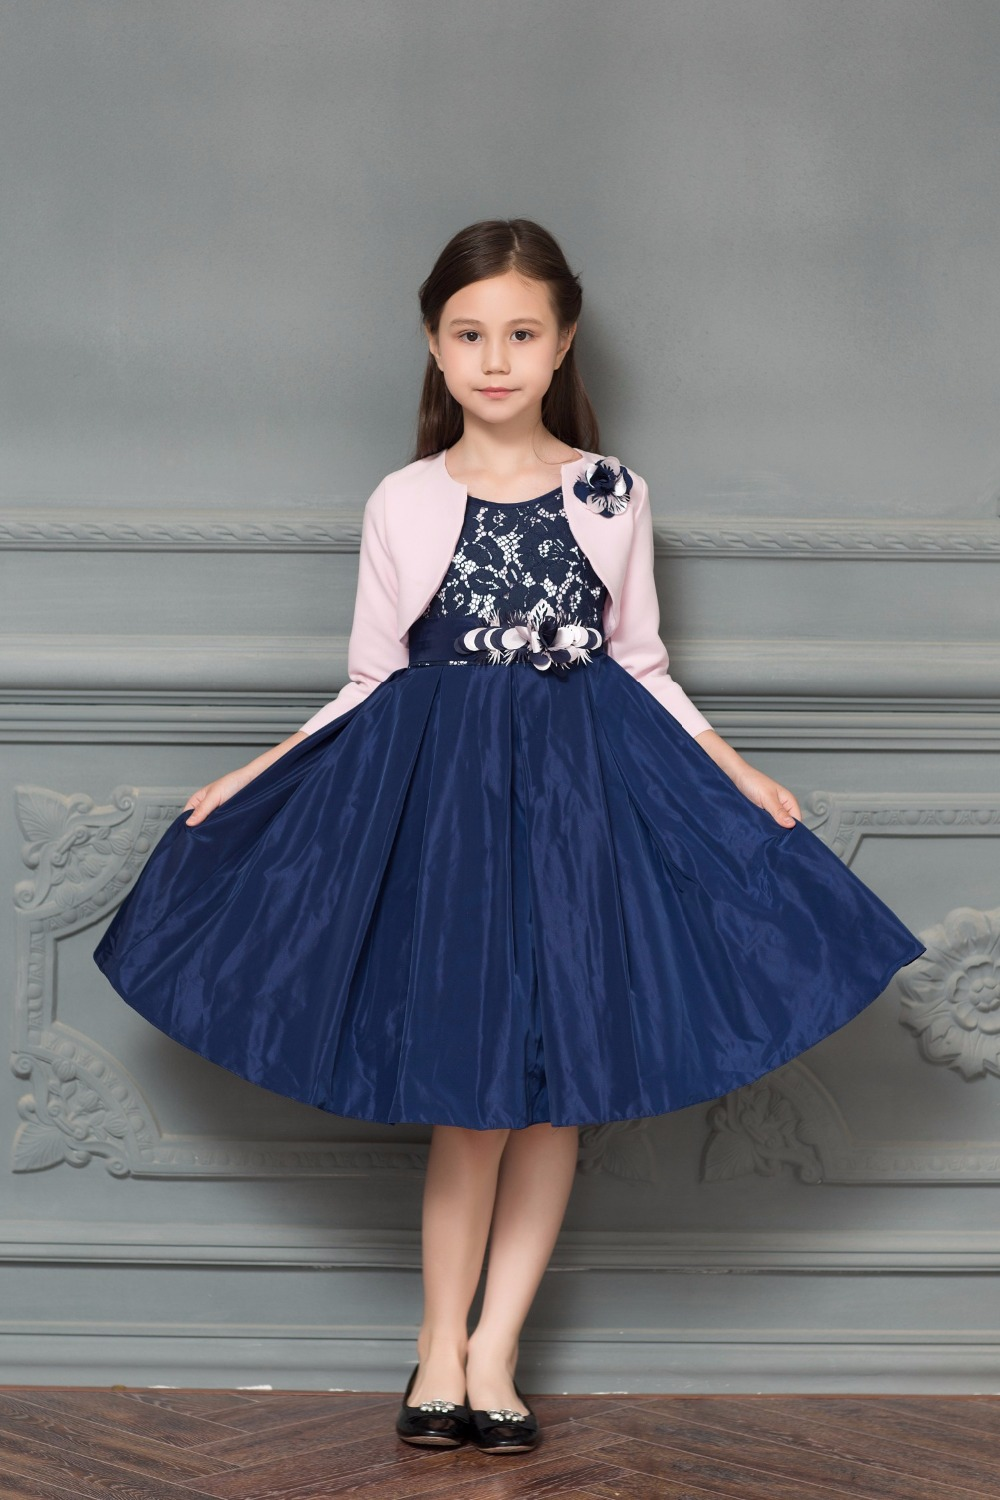 Navy blue satin pattern lace a line flower girls dress for wedding navy blue satin pattern lace a line flower girls dress for wedding with pink wrap bow sash first communion prom dresses for girl izmirmasajfo